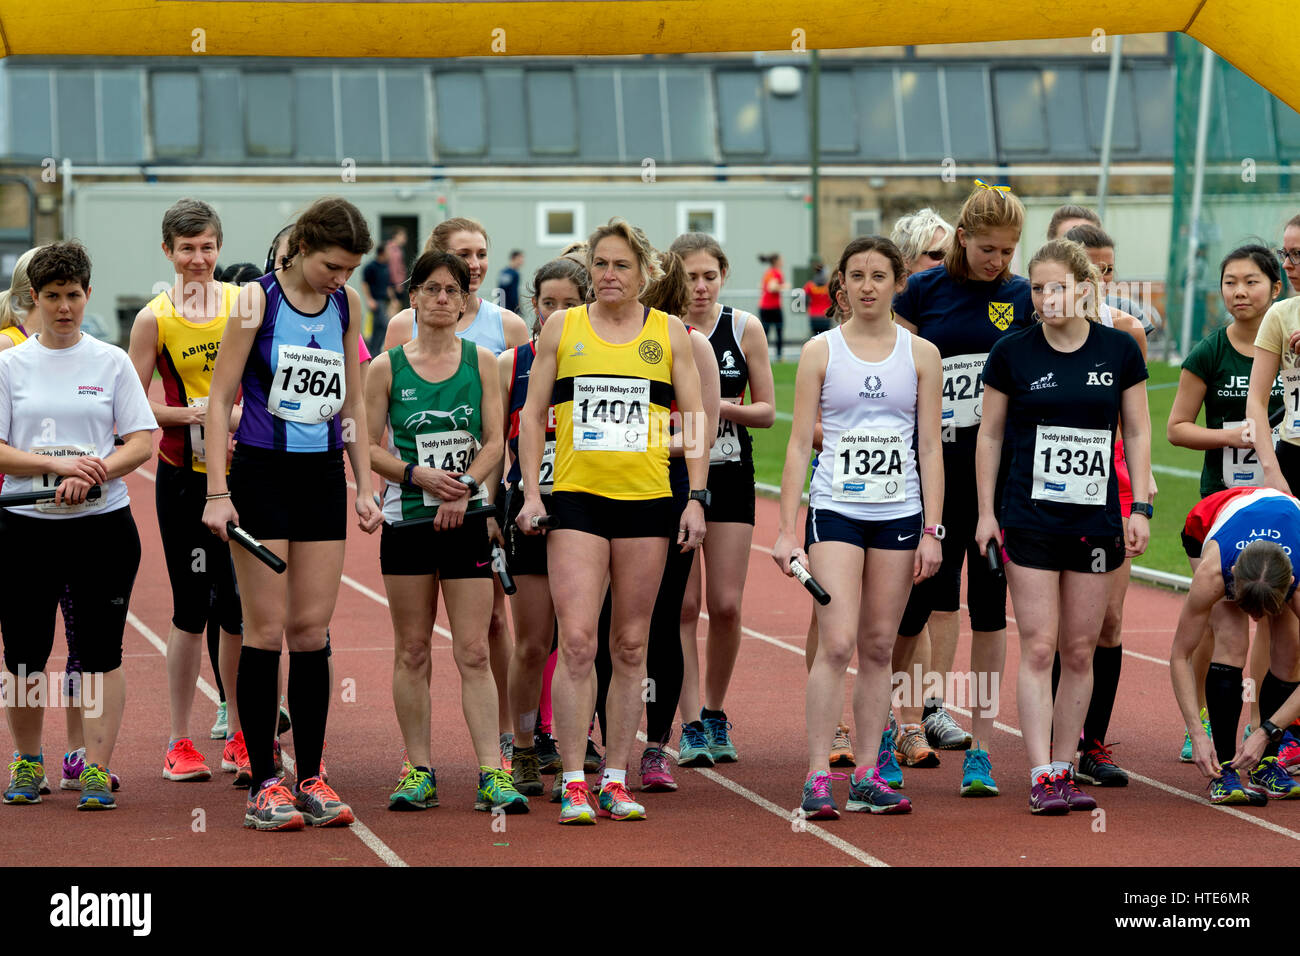 Women runners at Iffley Road track at the start of the Teddy Hall Relays, Oxford, UK - Stock Image